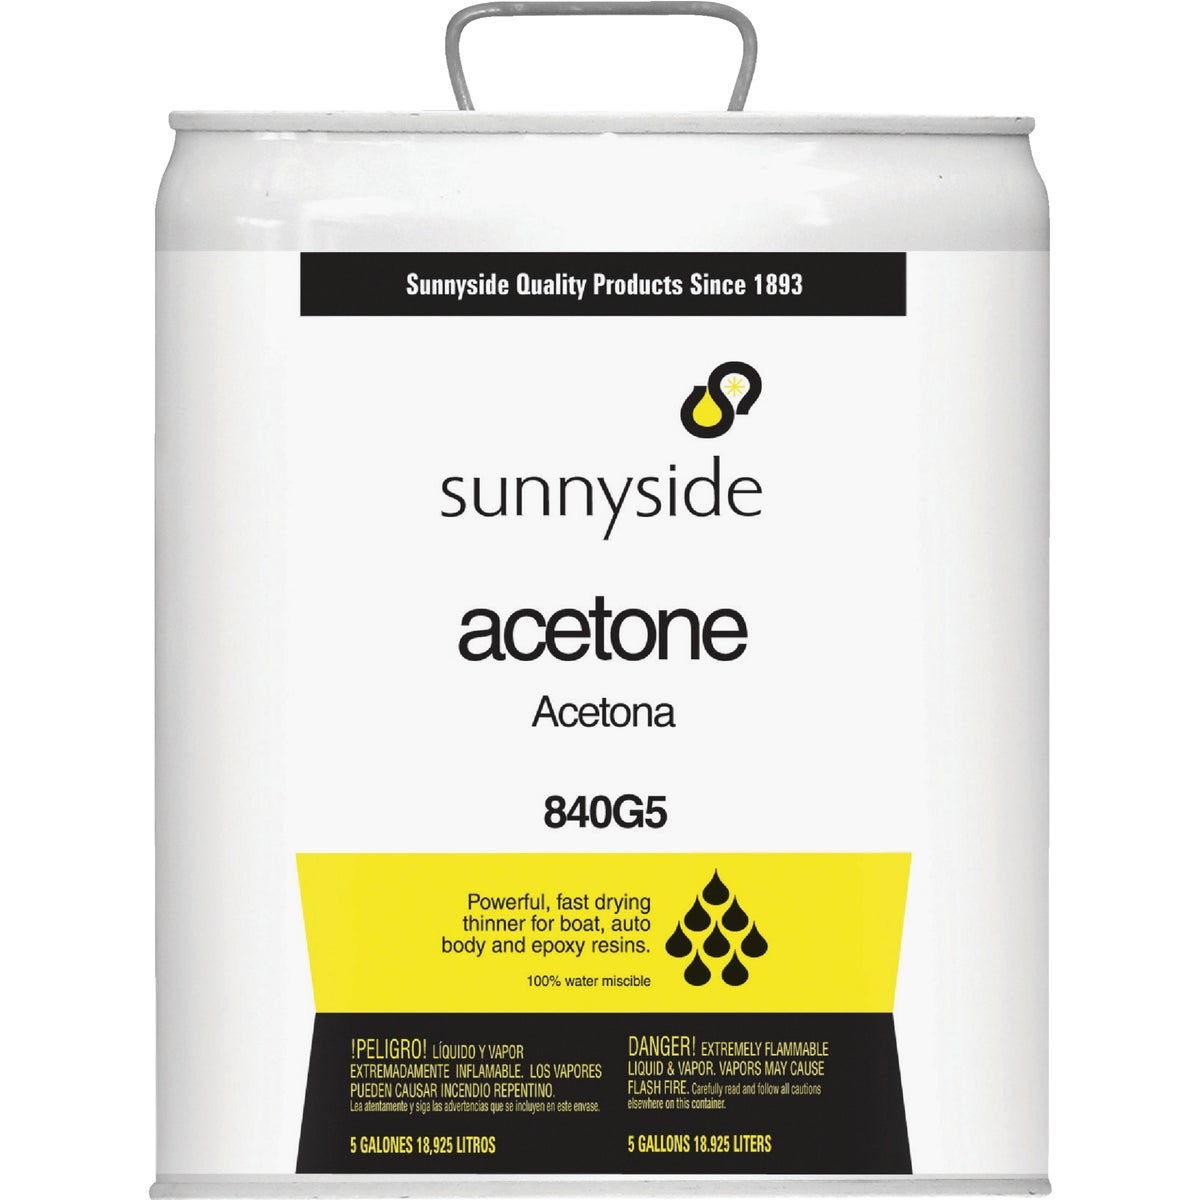 5GAL ACETONE - 840G5 by Sunnyside Corp